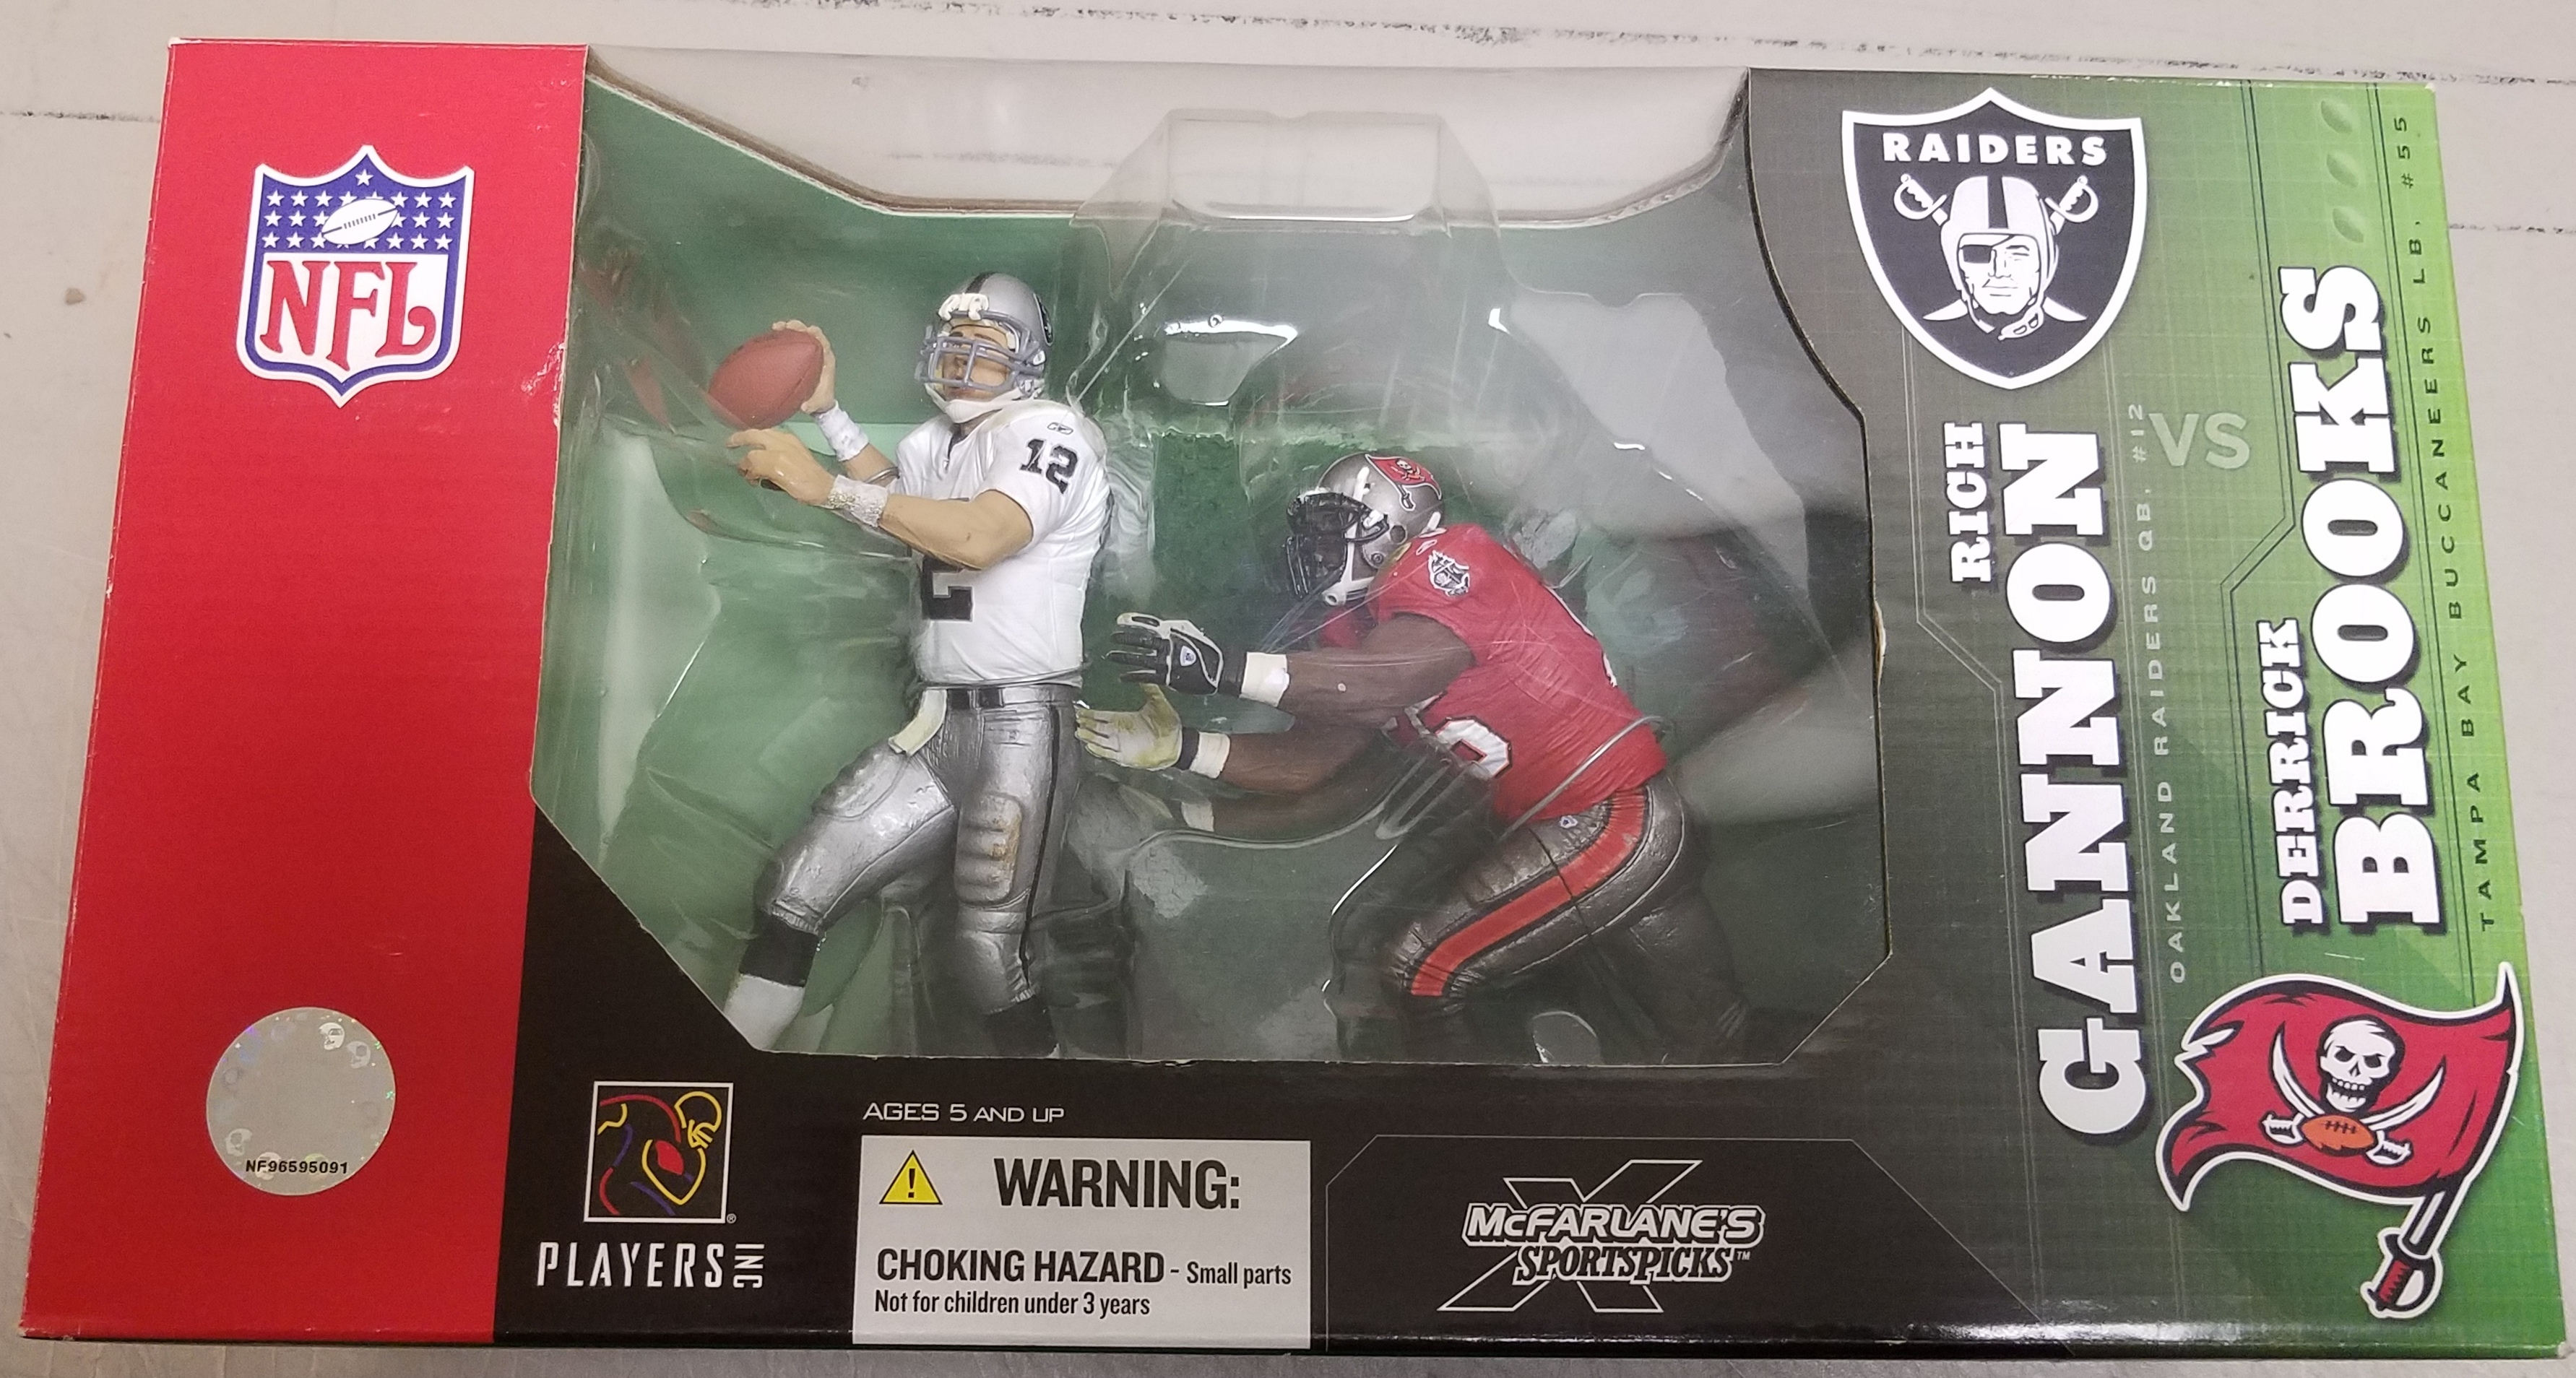 NFL COLLECTIBLES - RAIDERS RICH GANNON VS TAMPA BAY BUCS DERRICK BROOKS